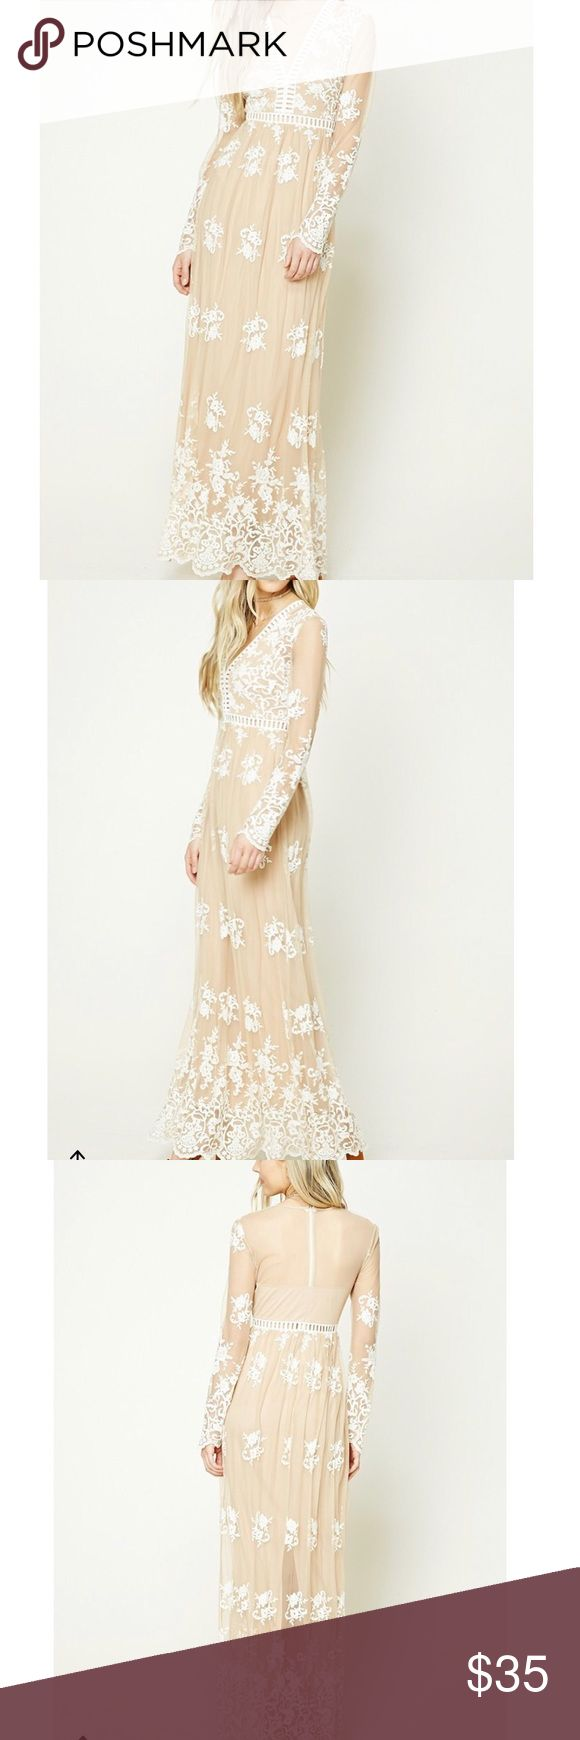 Embroidered Long Sleeve Maxi Dress Forever 21 Embroidered Long Sleeve Maxi Dress in M. Nude & Ivory with sheer sleeves. Made to look like a For Love & Lemons Dress. SOLD OUT!!!! Forever 21 Dresses Maxi